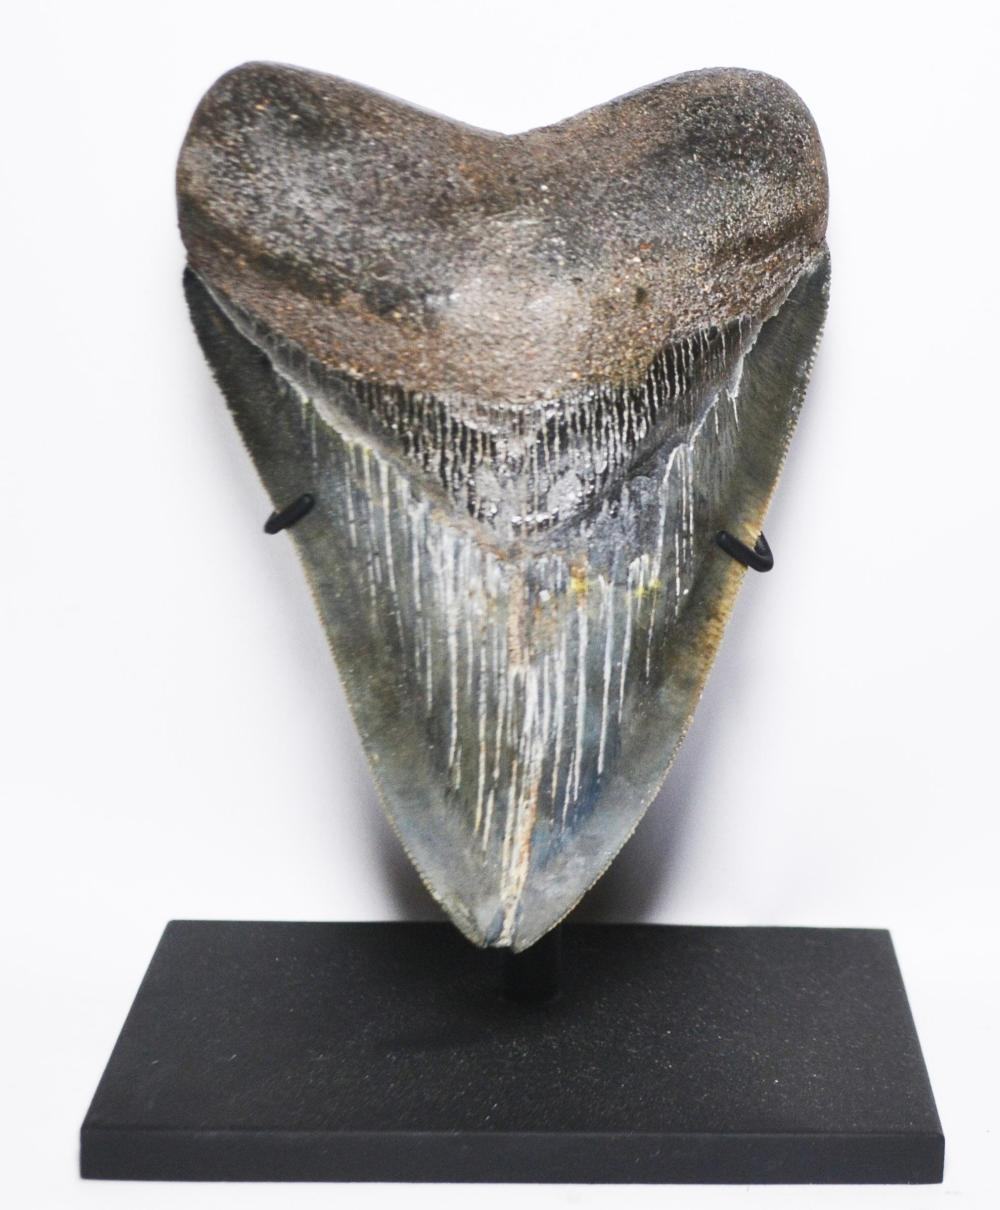 Serrated Megaladon Tooth